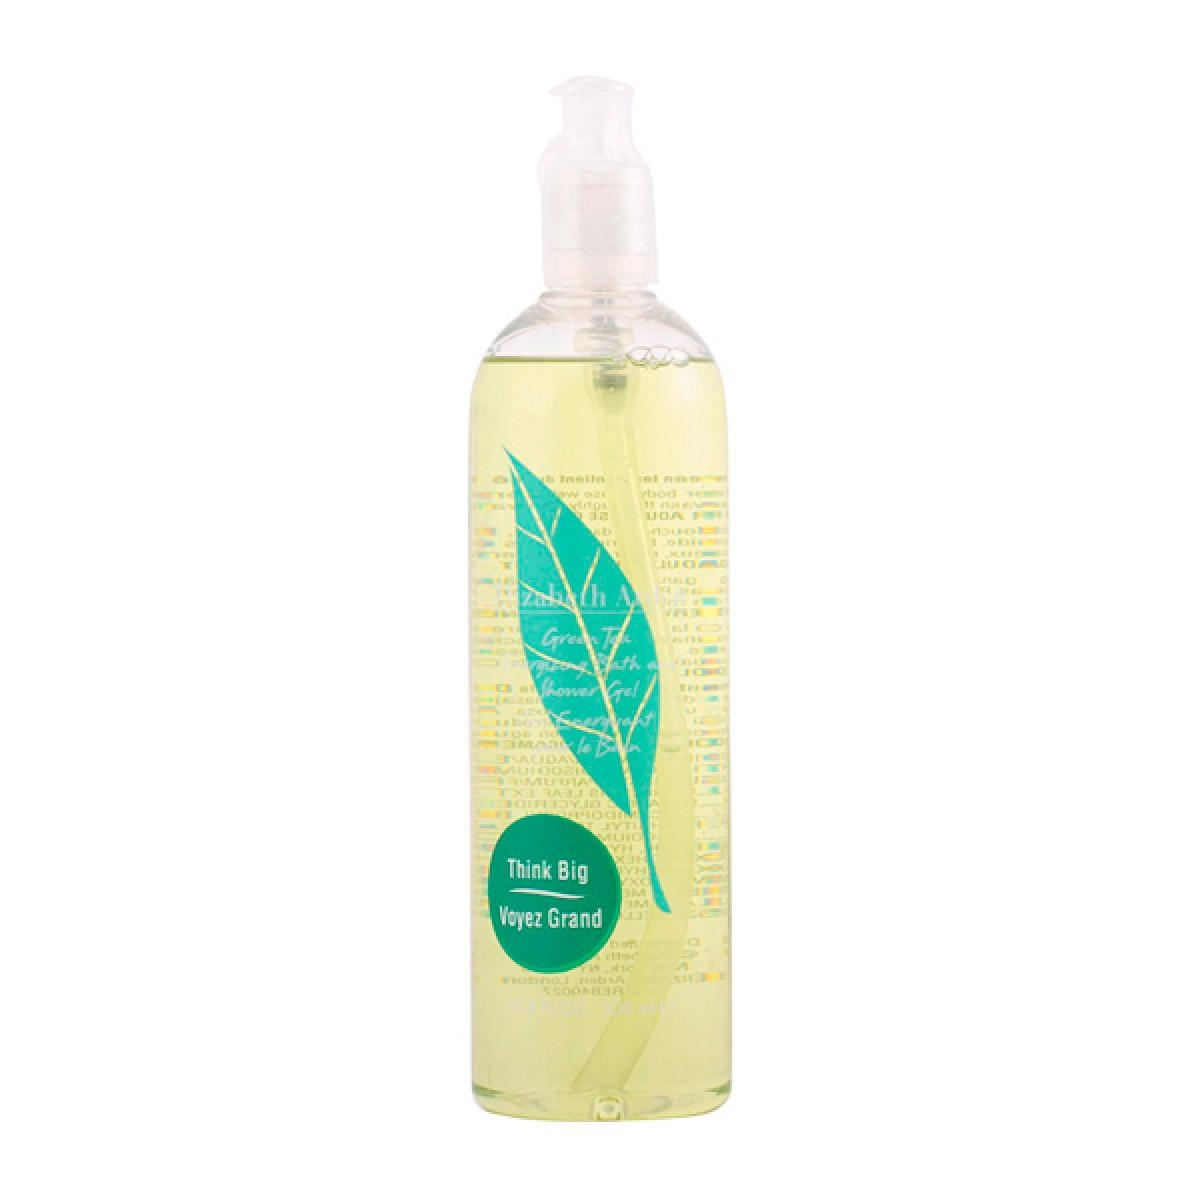 Acquista Green Tea Gel Doccia 500ml Bellezza 17533629 | Glooke.com